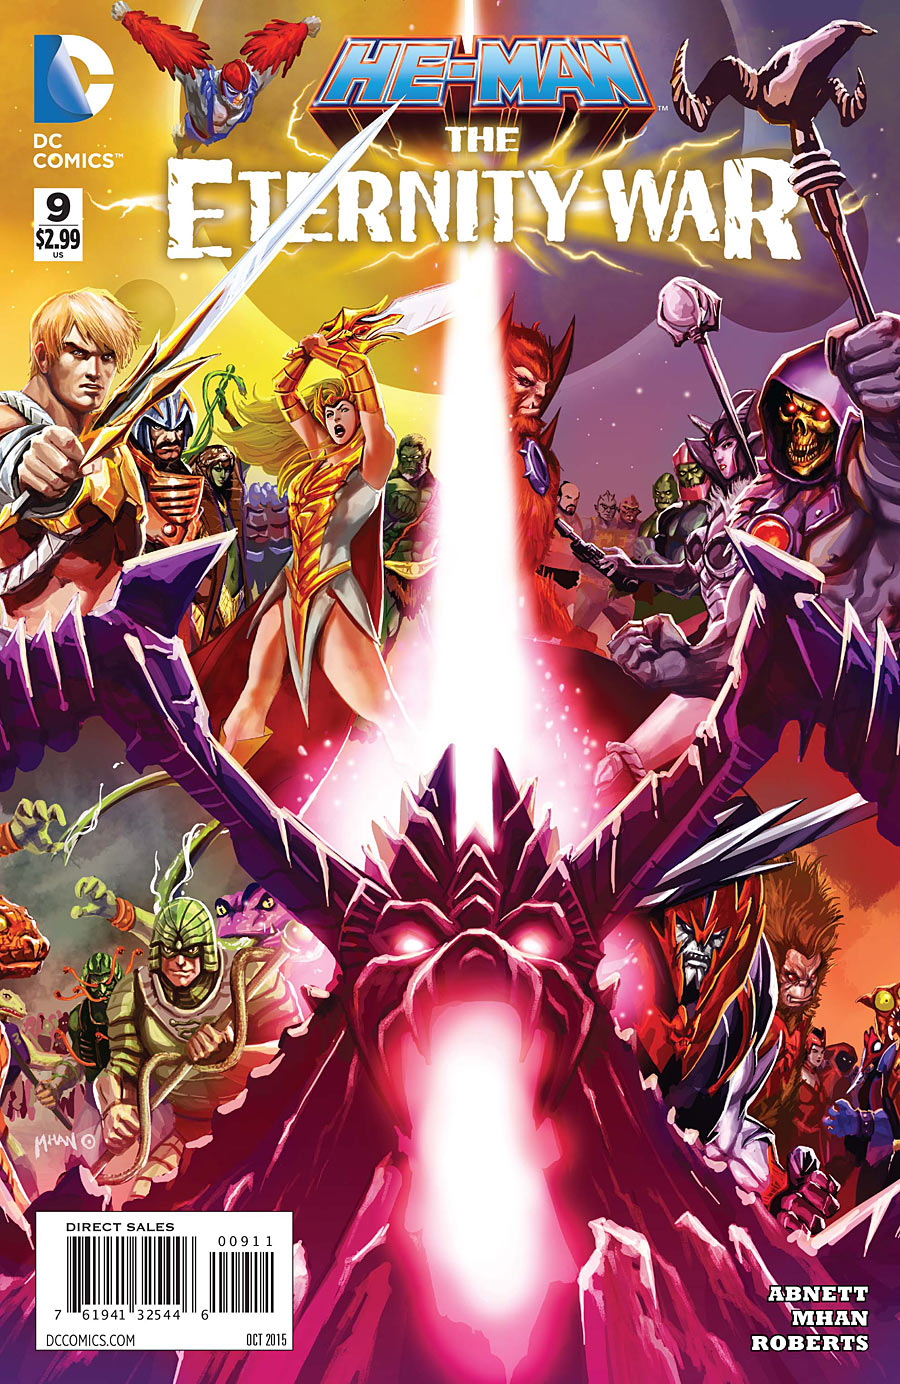 He-Man: The Eternity War Vol 1 9